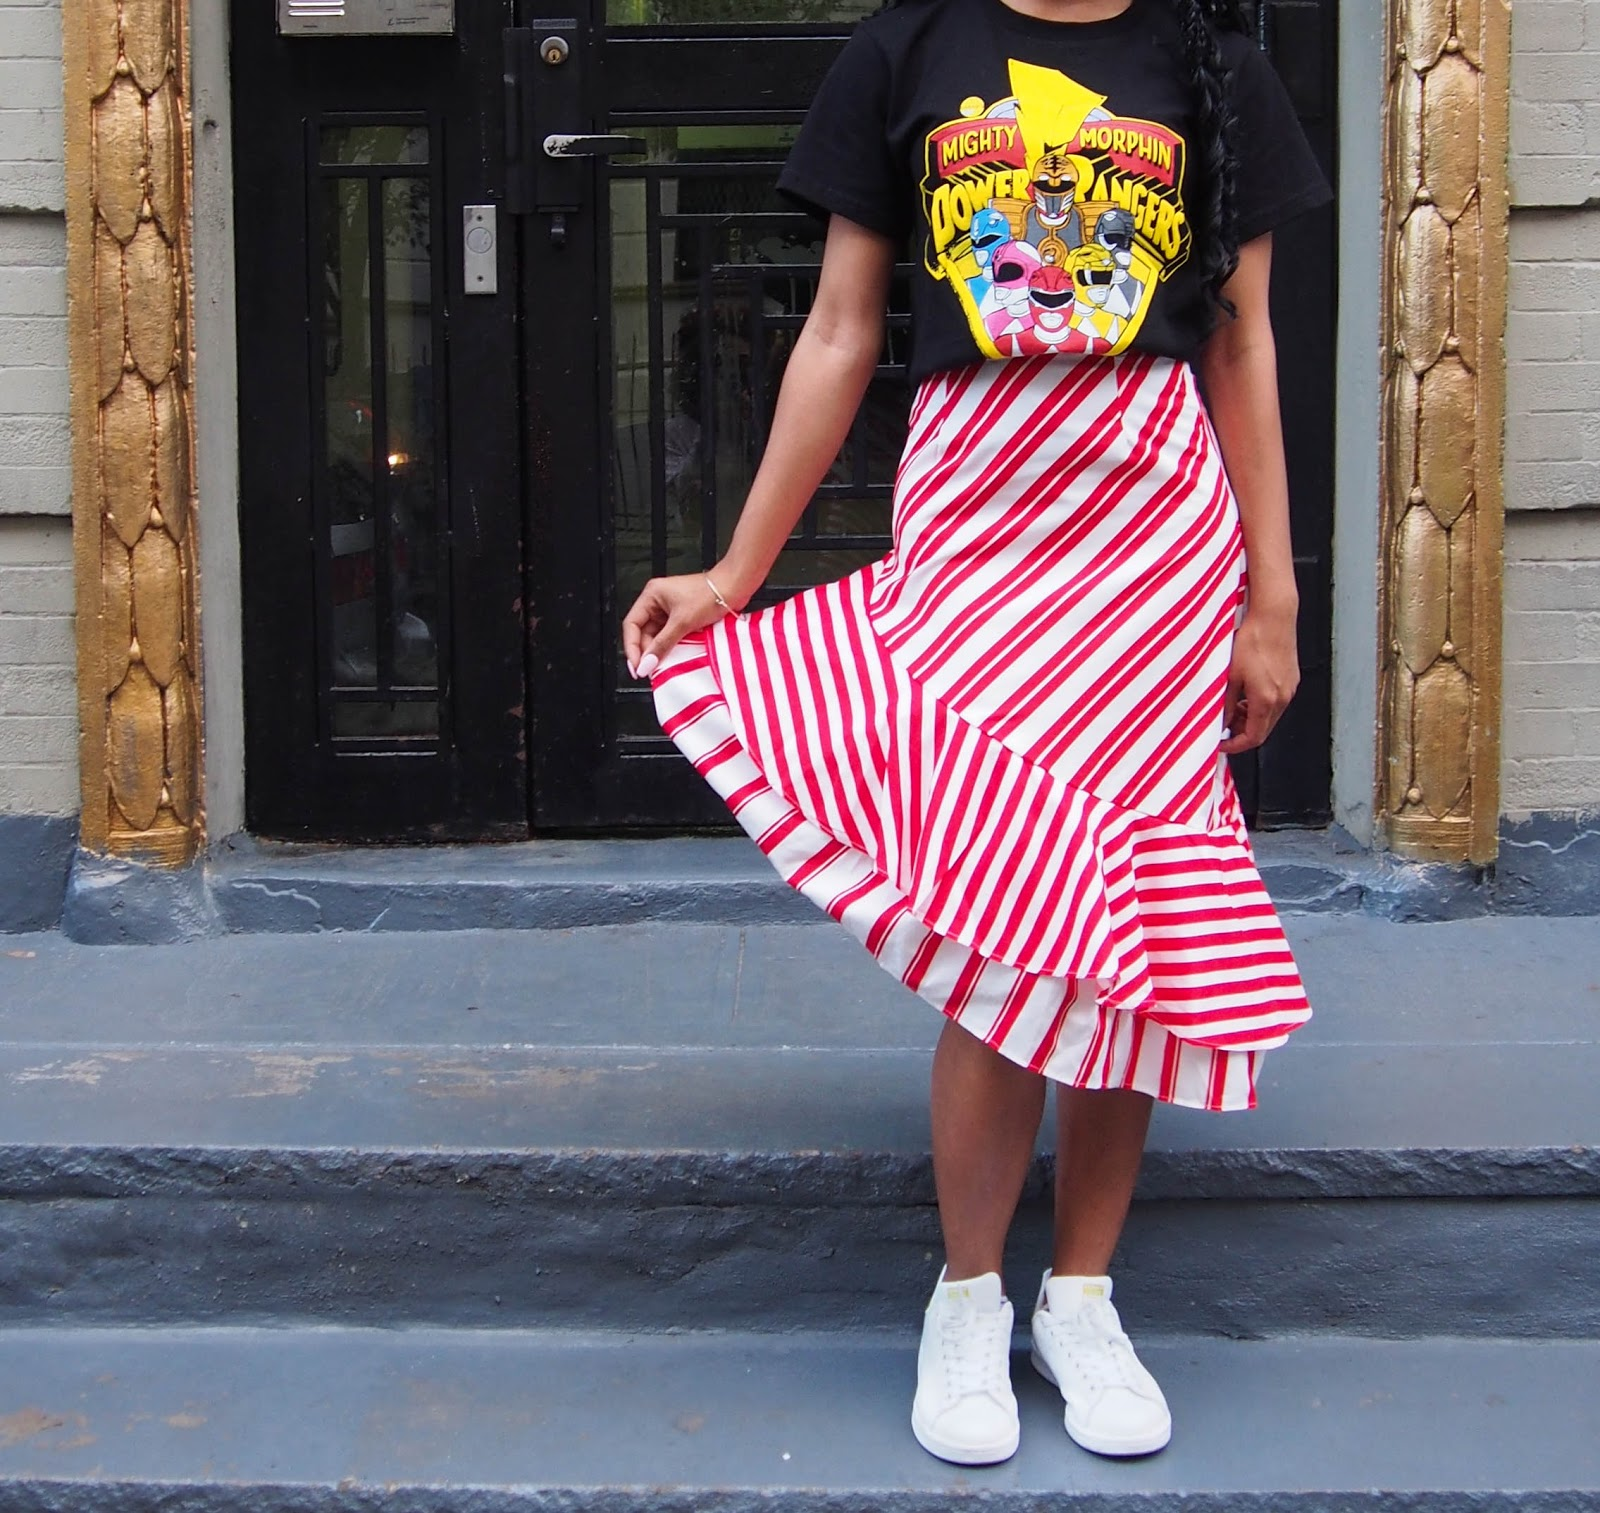 The Strong Suit, Crochet Braids, Red and White Skirt, Power Rangers Graphic Tee, Stan Smiths, Adidas, Street Style, NYFW Street Style, NYFW, Spring/Summer 2020, New York Porch, Upper East Side, NC Blogger